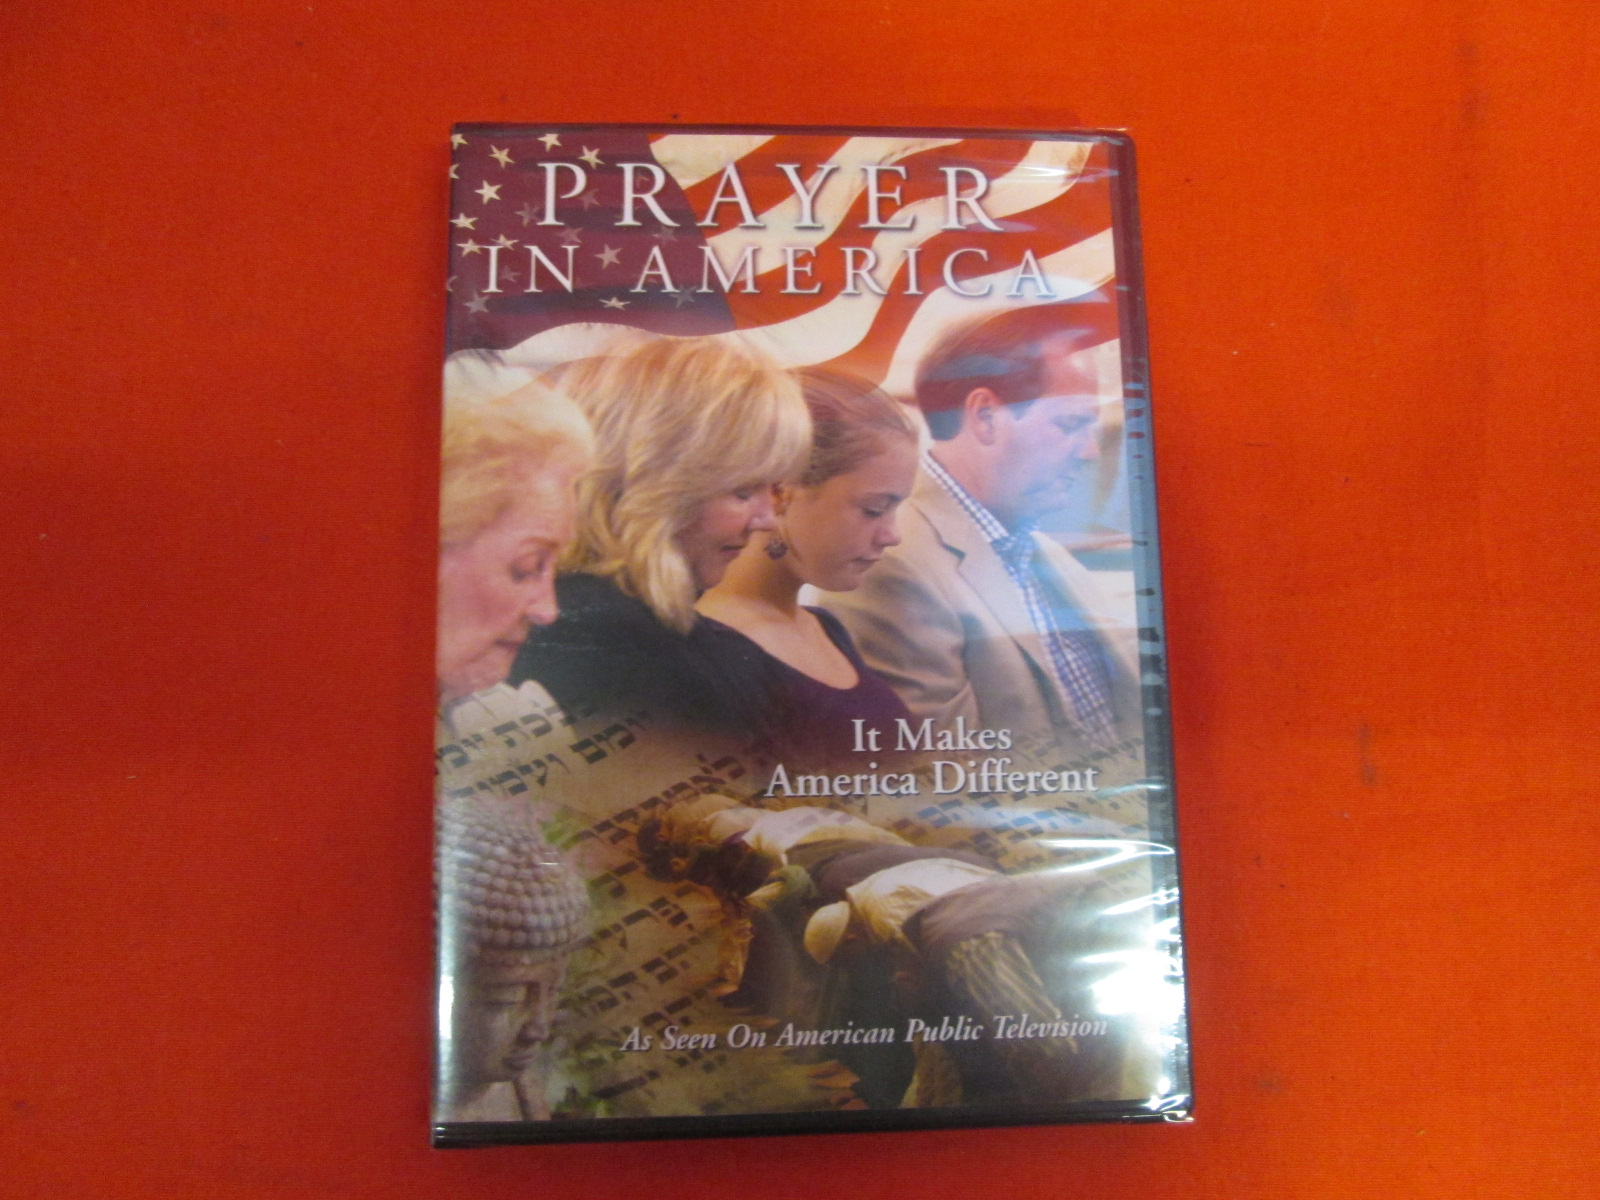 Prayer In America On DVD